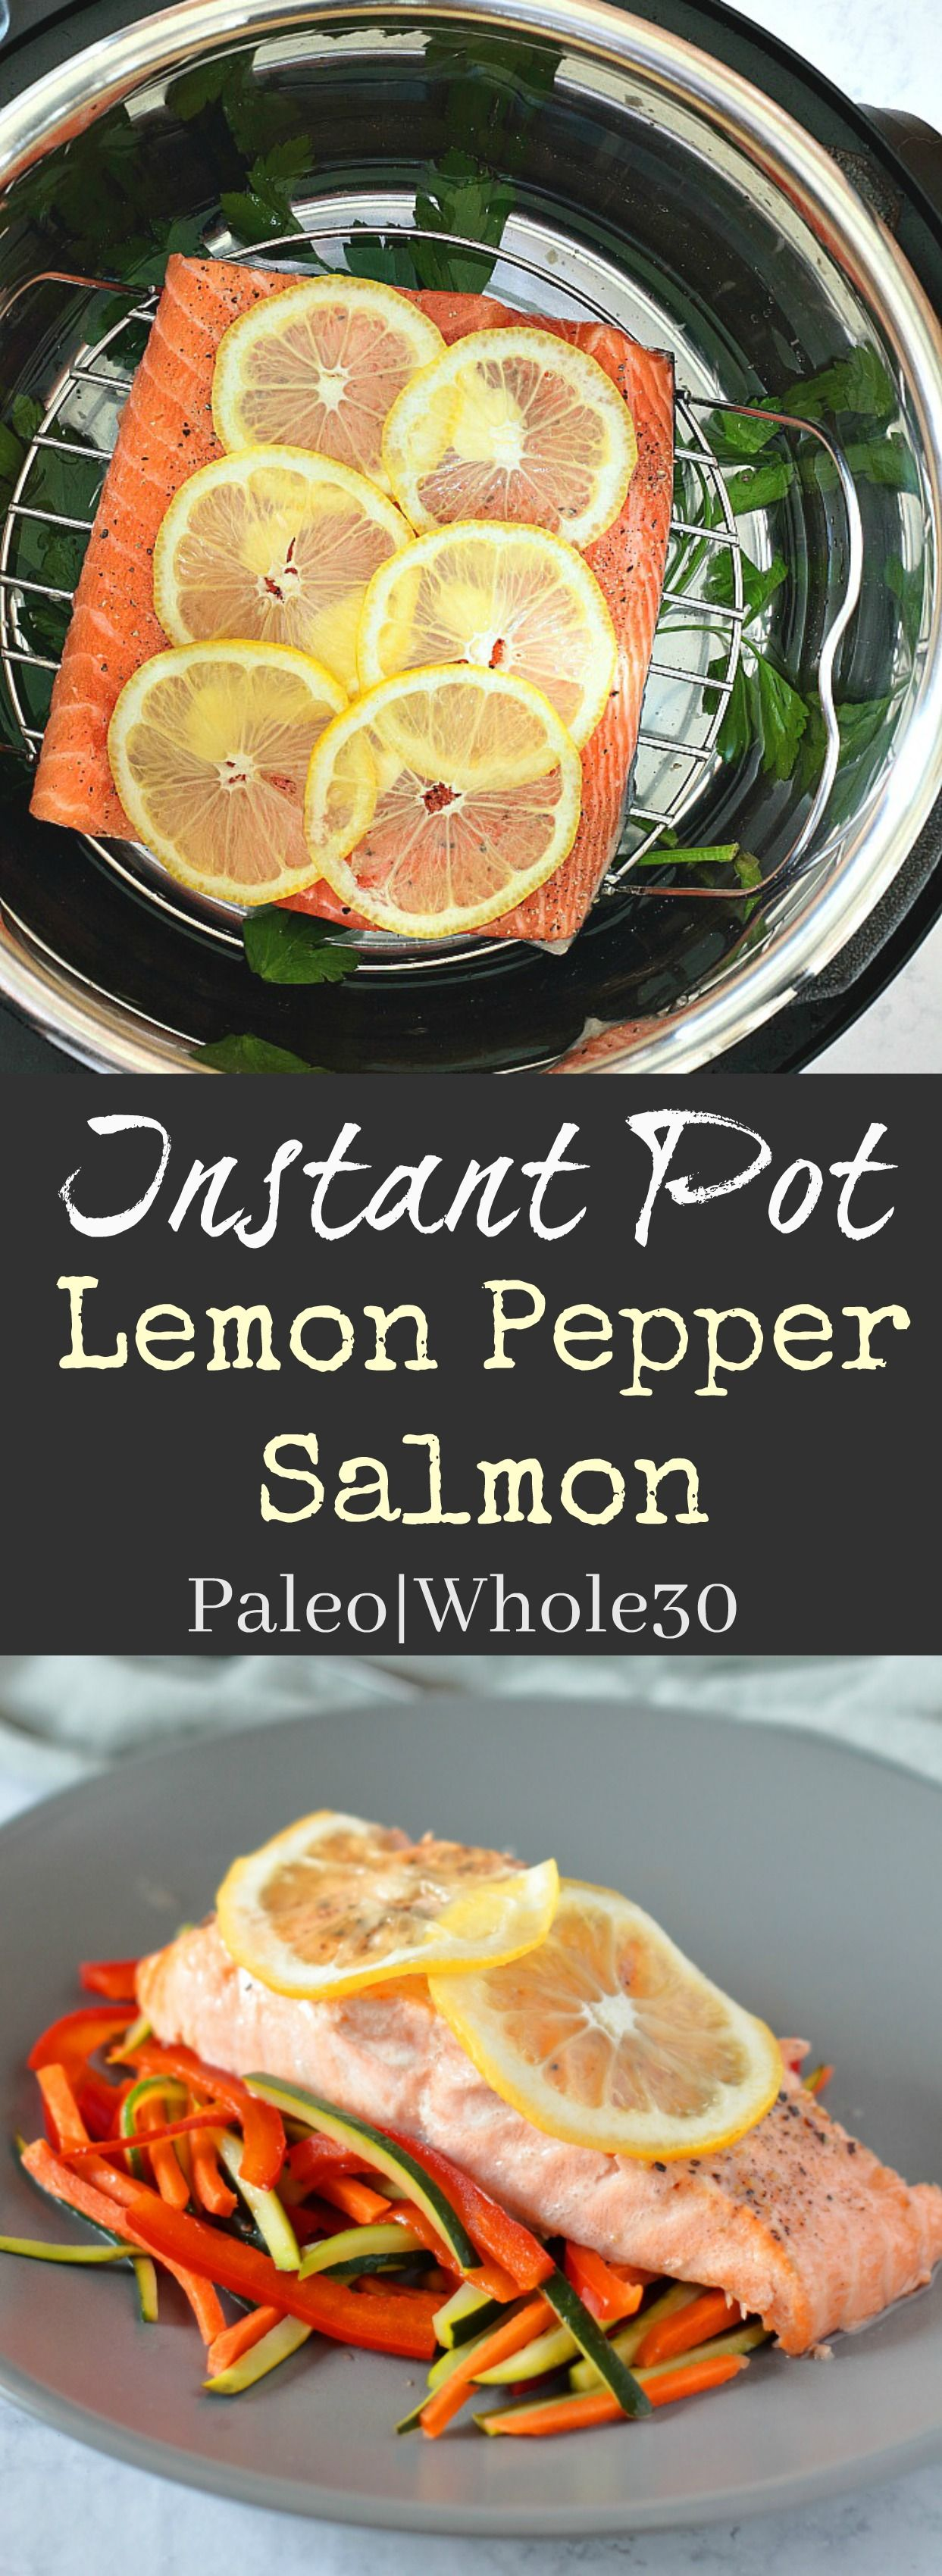 The Easiest Way To Make Salmon, And It Has The Most Amazing Texture!